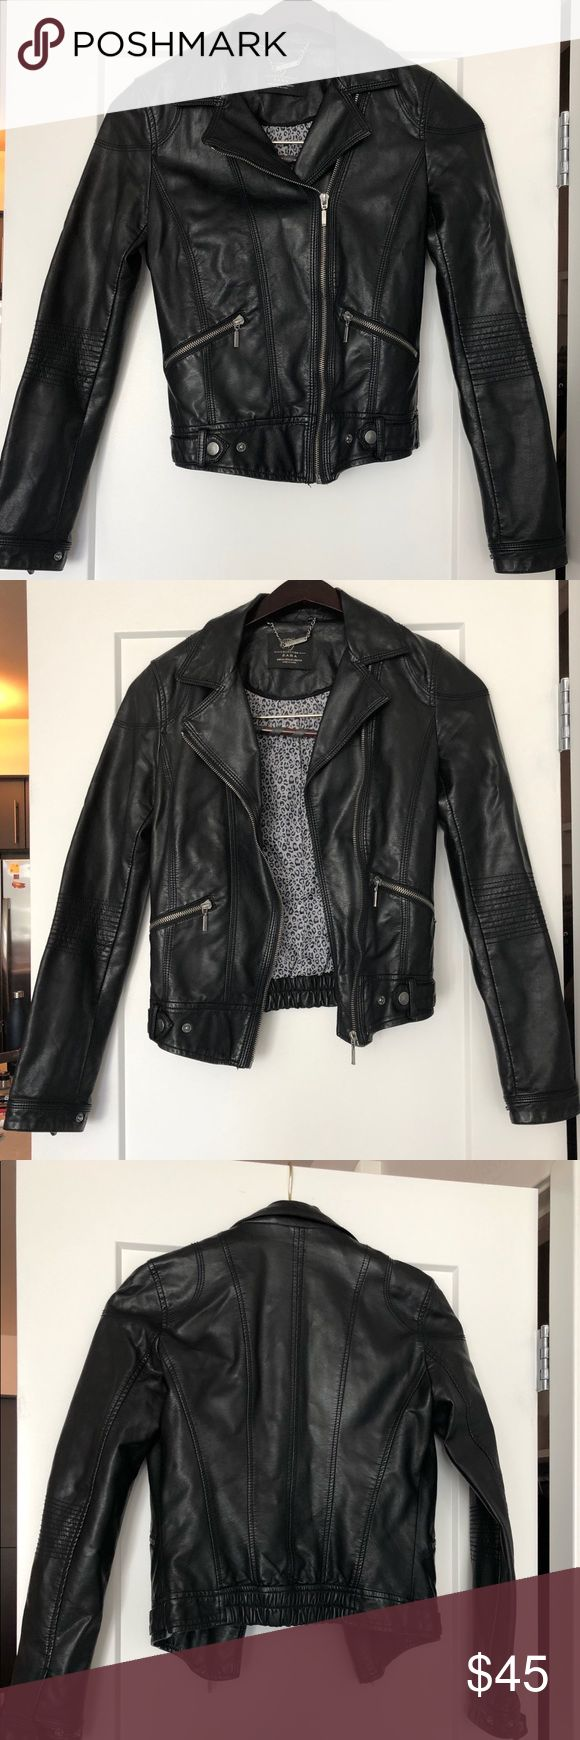 Zara faux leather jacket Zara jacket. Moto jacket. Zara